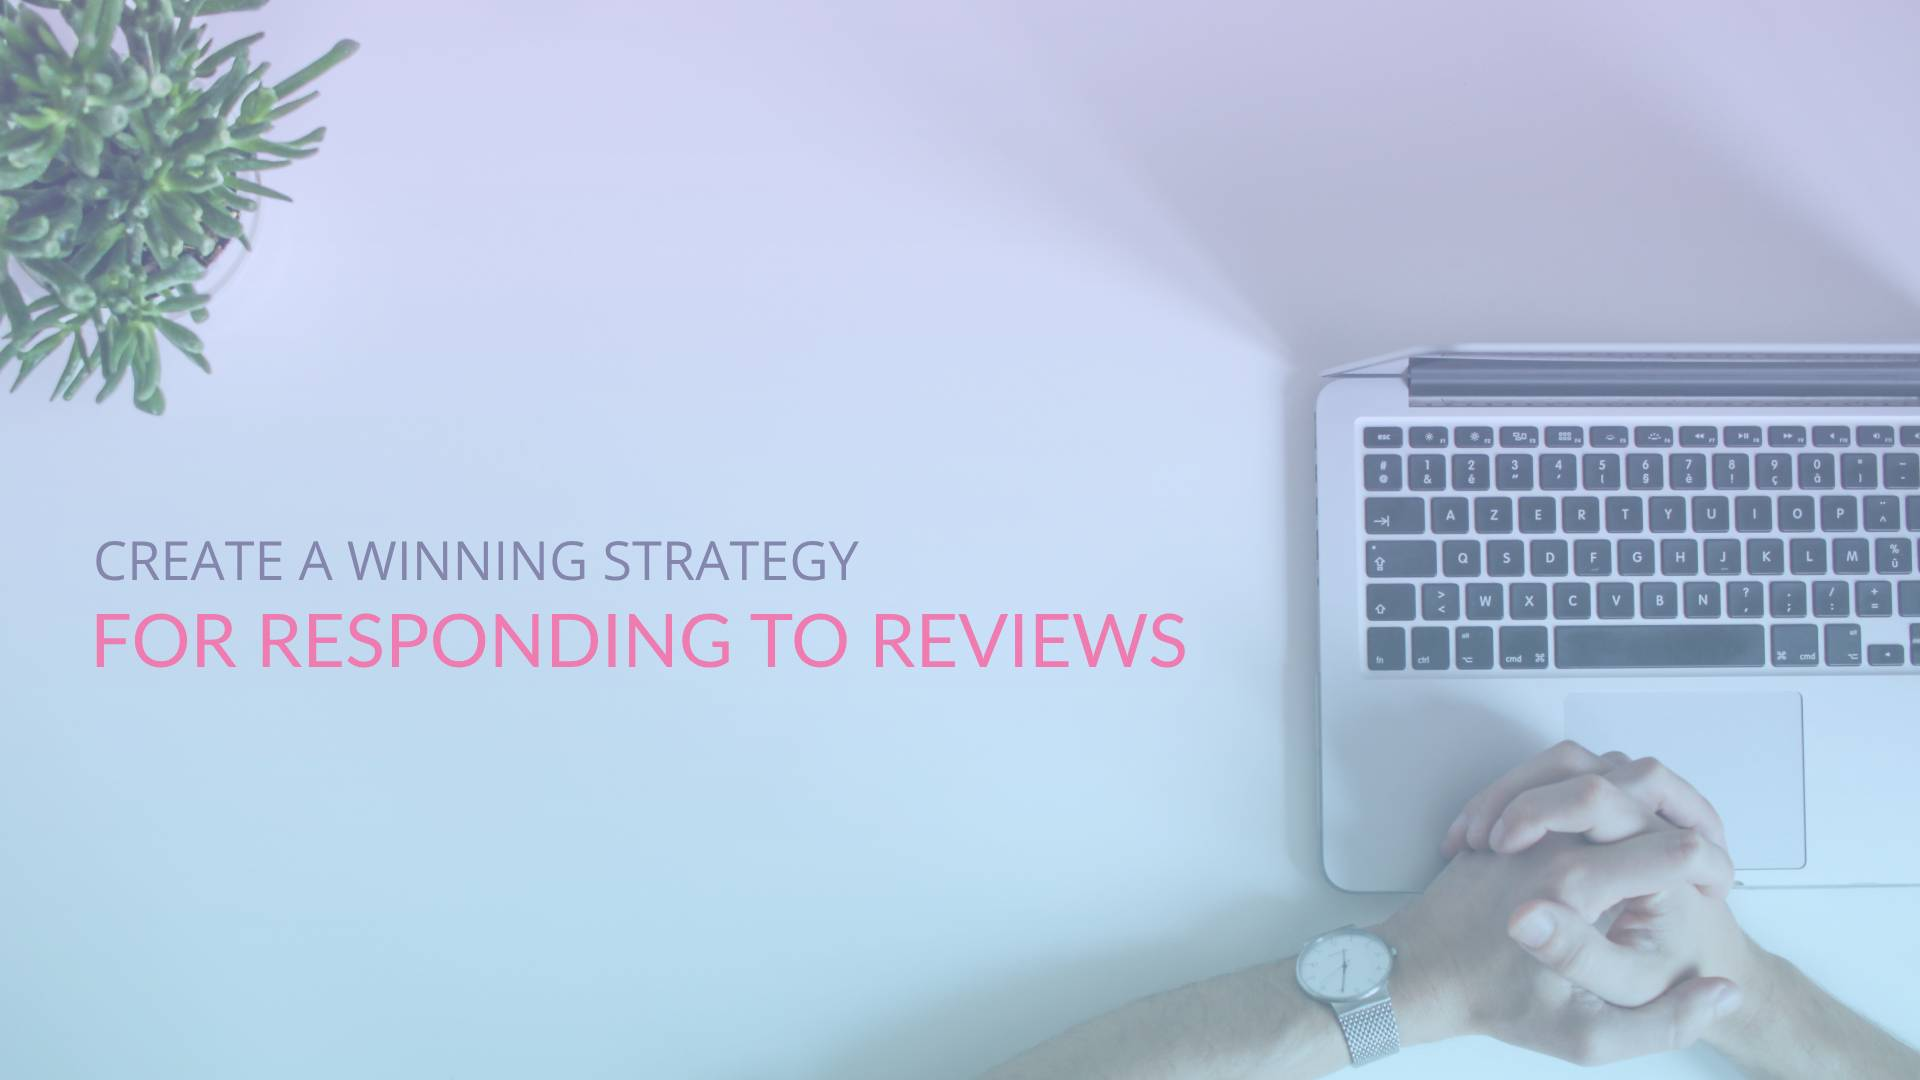 Create a winning strategy for responding to hotel reviews on TripAdvisor